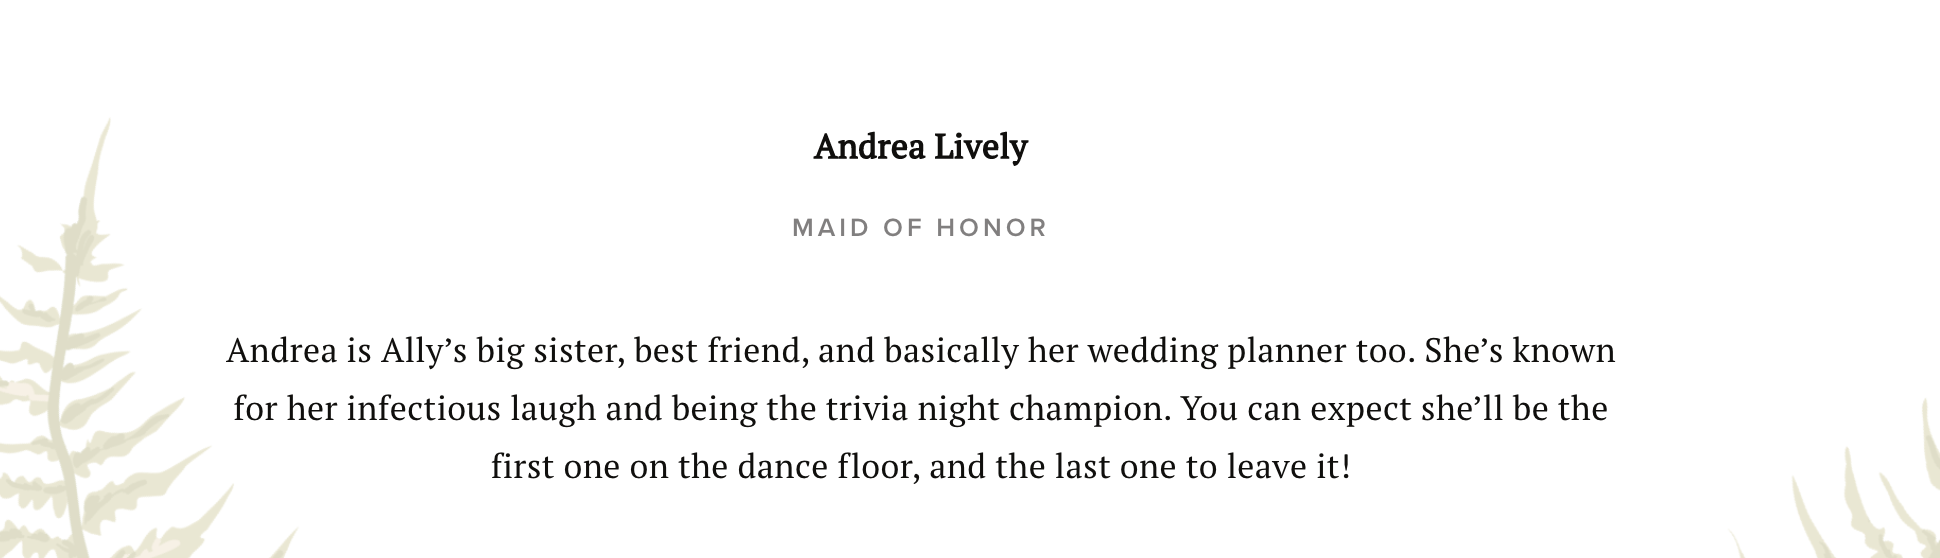 Example of maid of honor wedding party bio